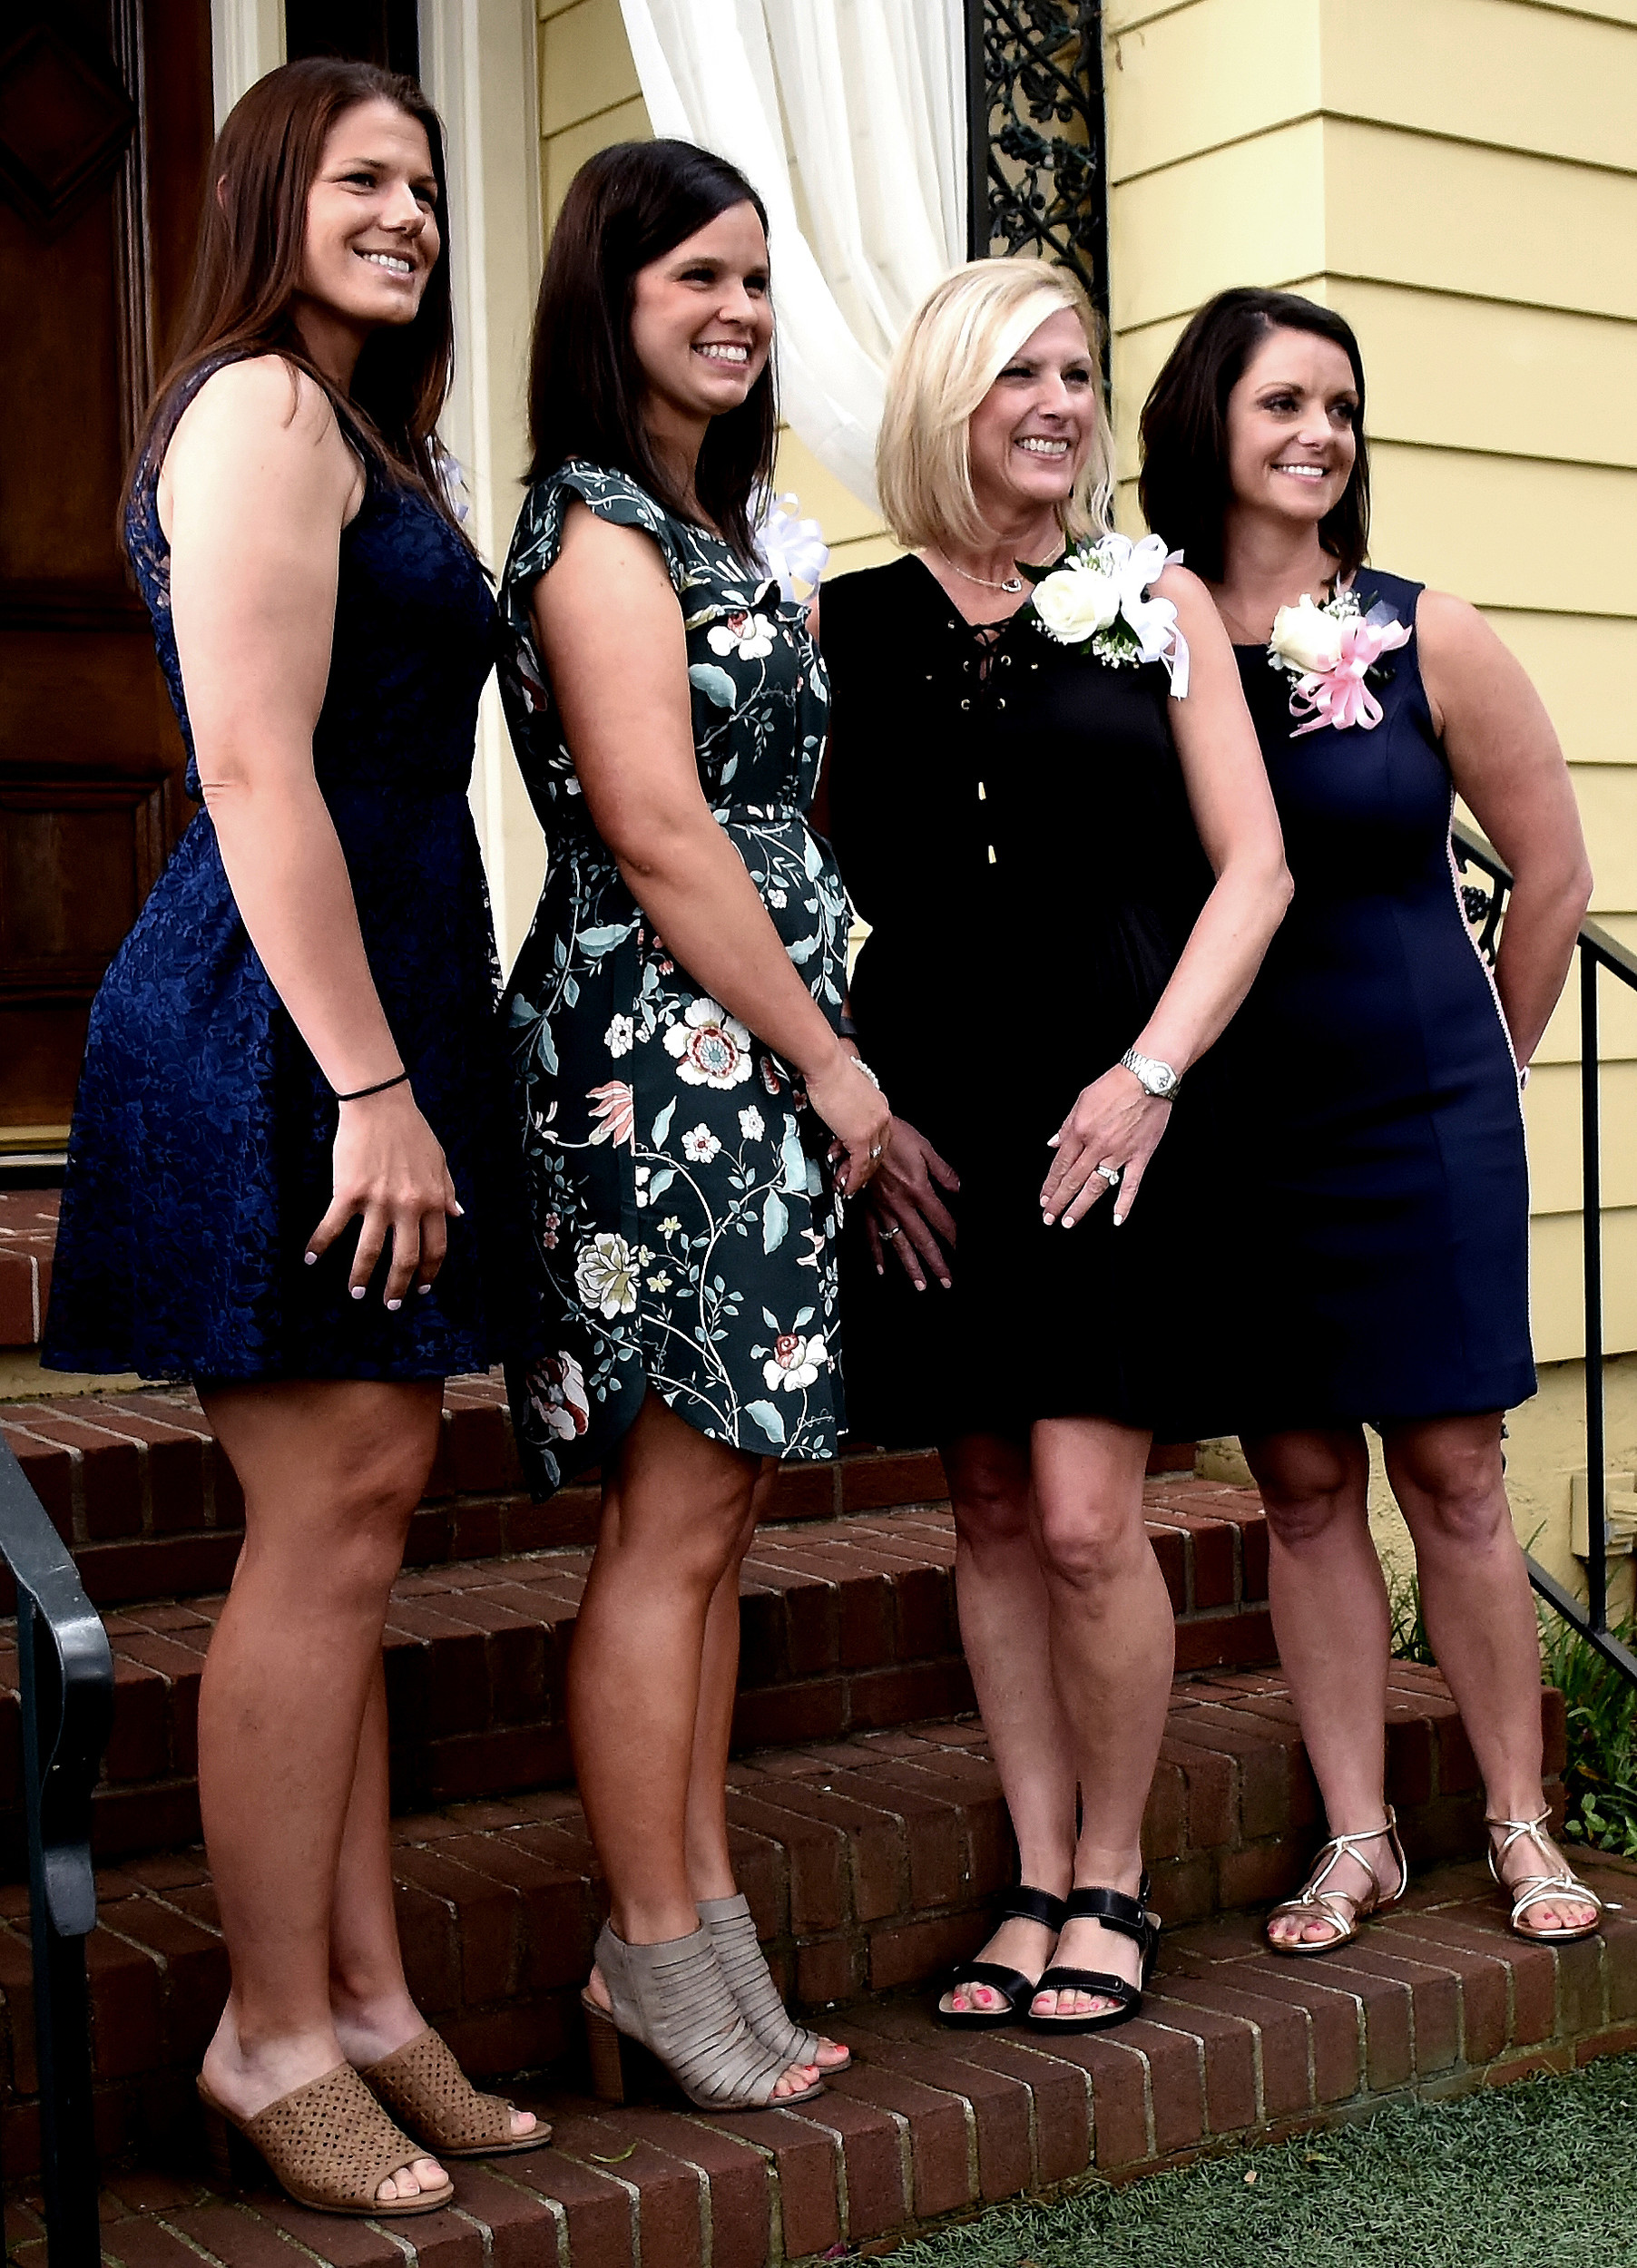 Cartersville's four Teachers of the Year are, from left, Shannon Suarez from Cartersville Elementary, Dr. Kim Foster from Cartersville High, Leighanne Young from Cartersville Primary and system winner Sara Bright from Cartersville Middle.